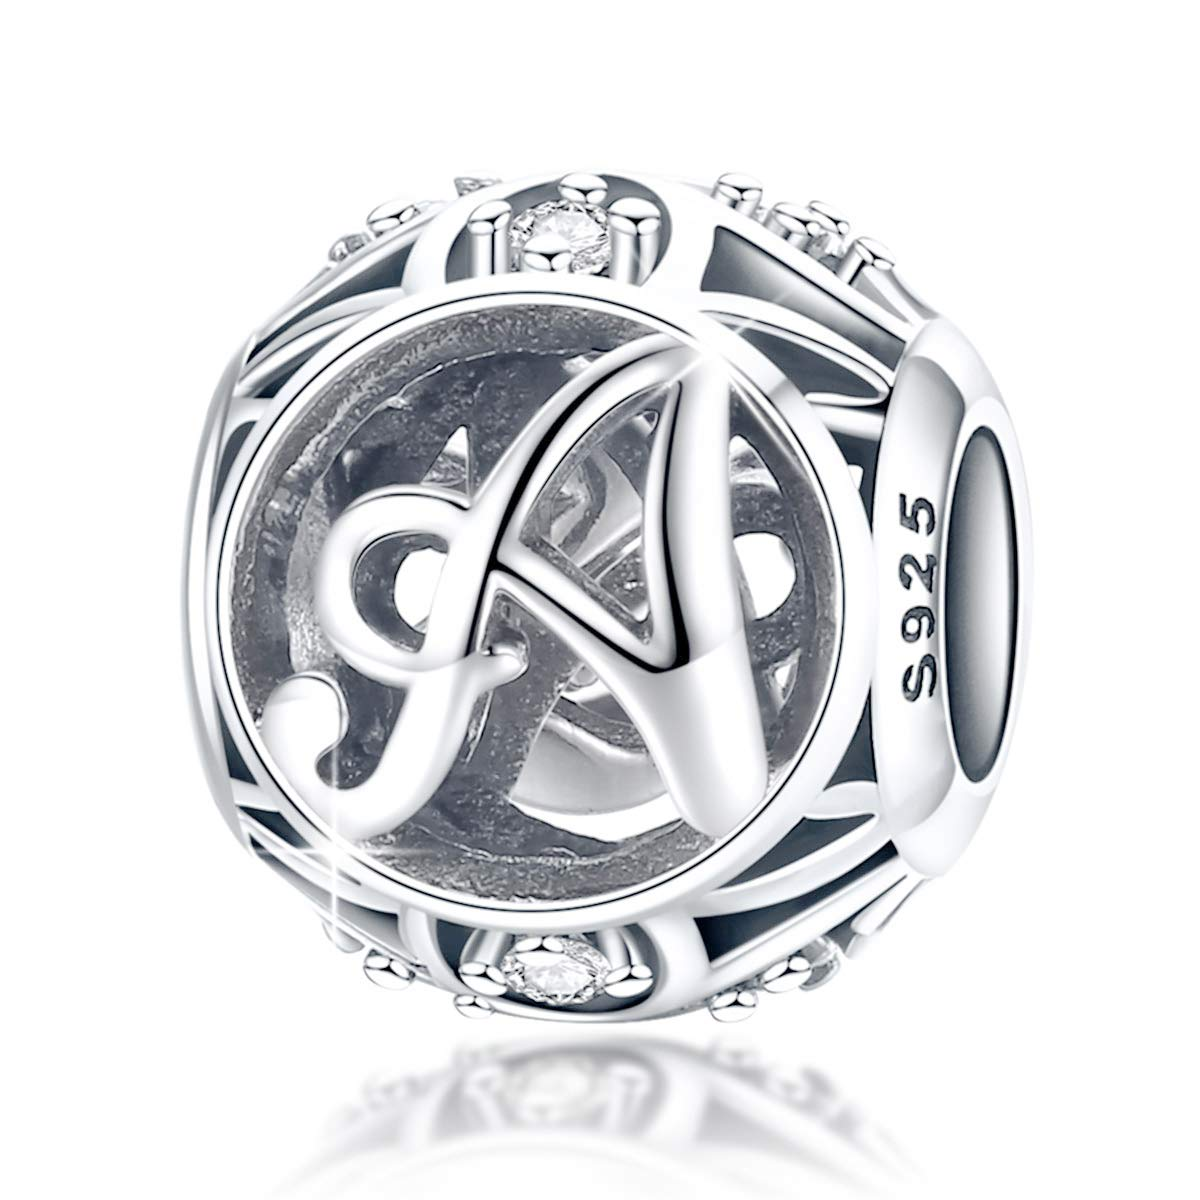 FOREVER QUEEN Letter Charm Initial A-Z Alphabet Charm Dangle Charm for Bracelet Necklace 925 Sterling Silver CZ Beads Charm Personalized Gift Jewelry Mother's Day